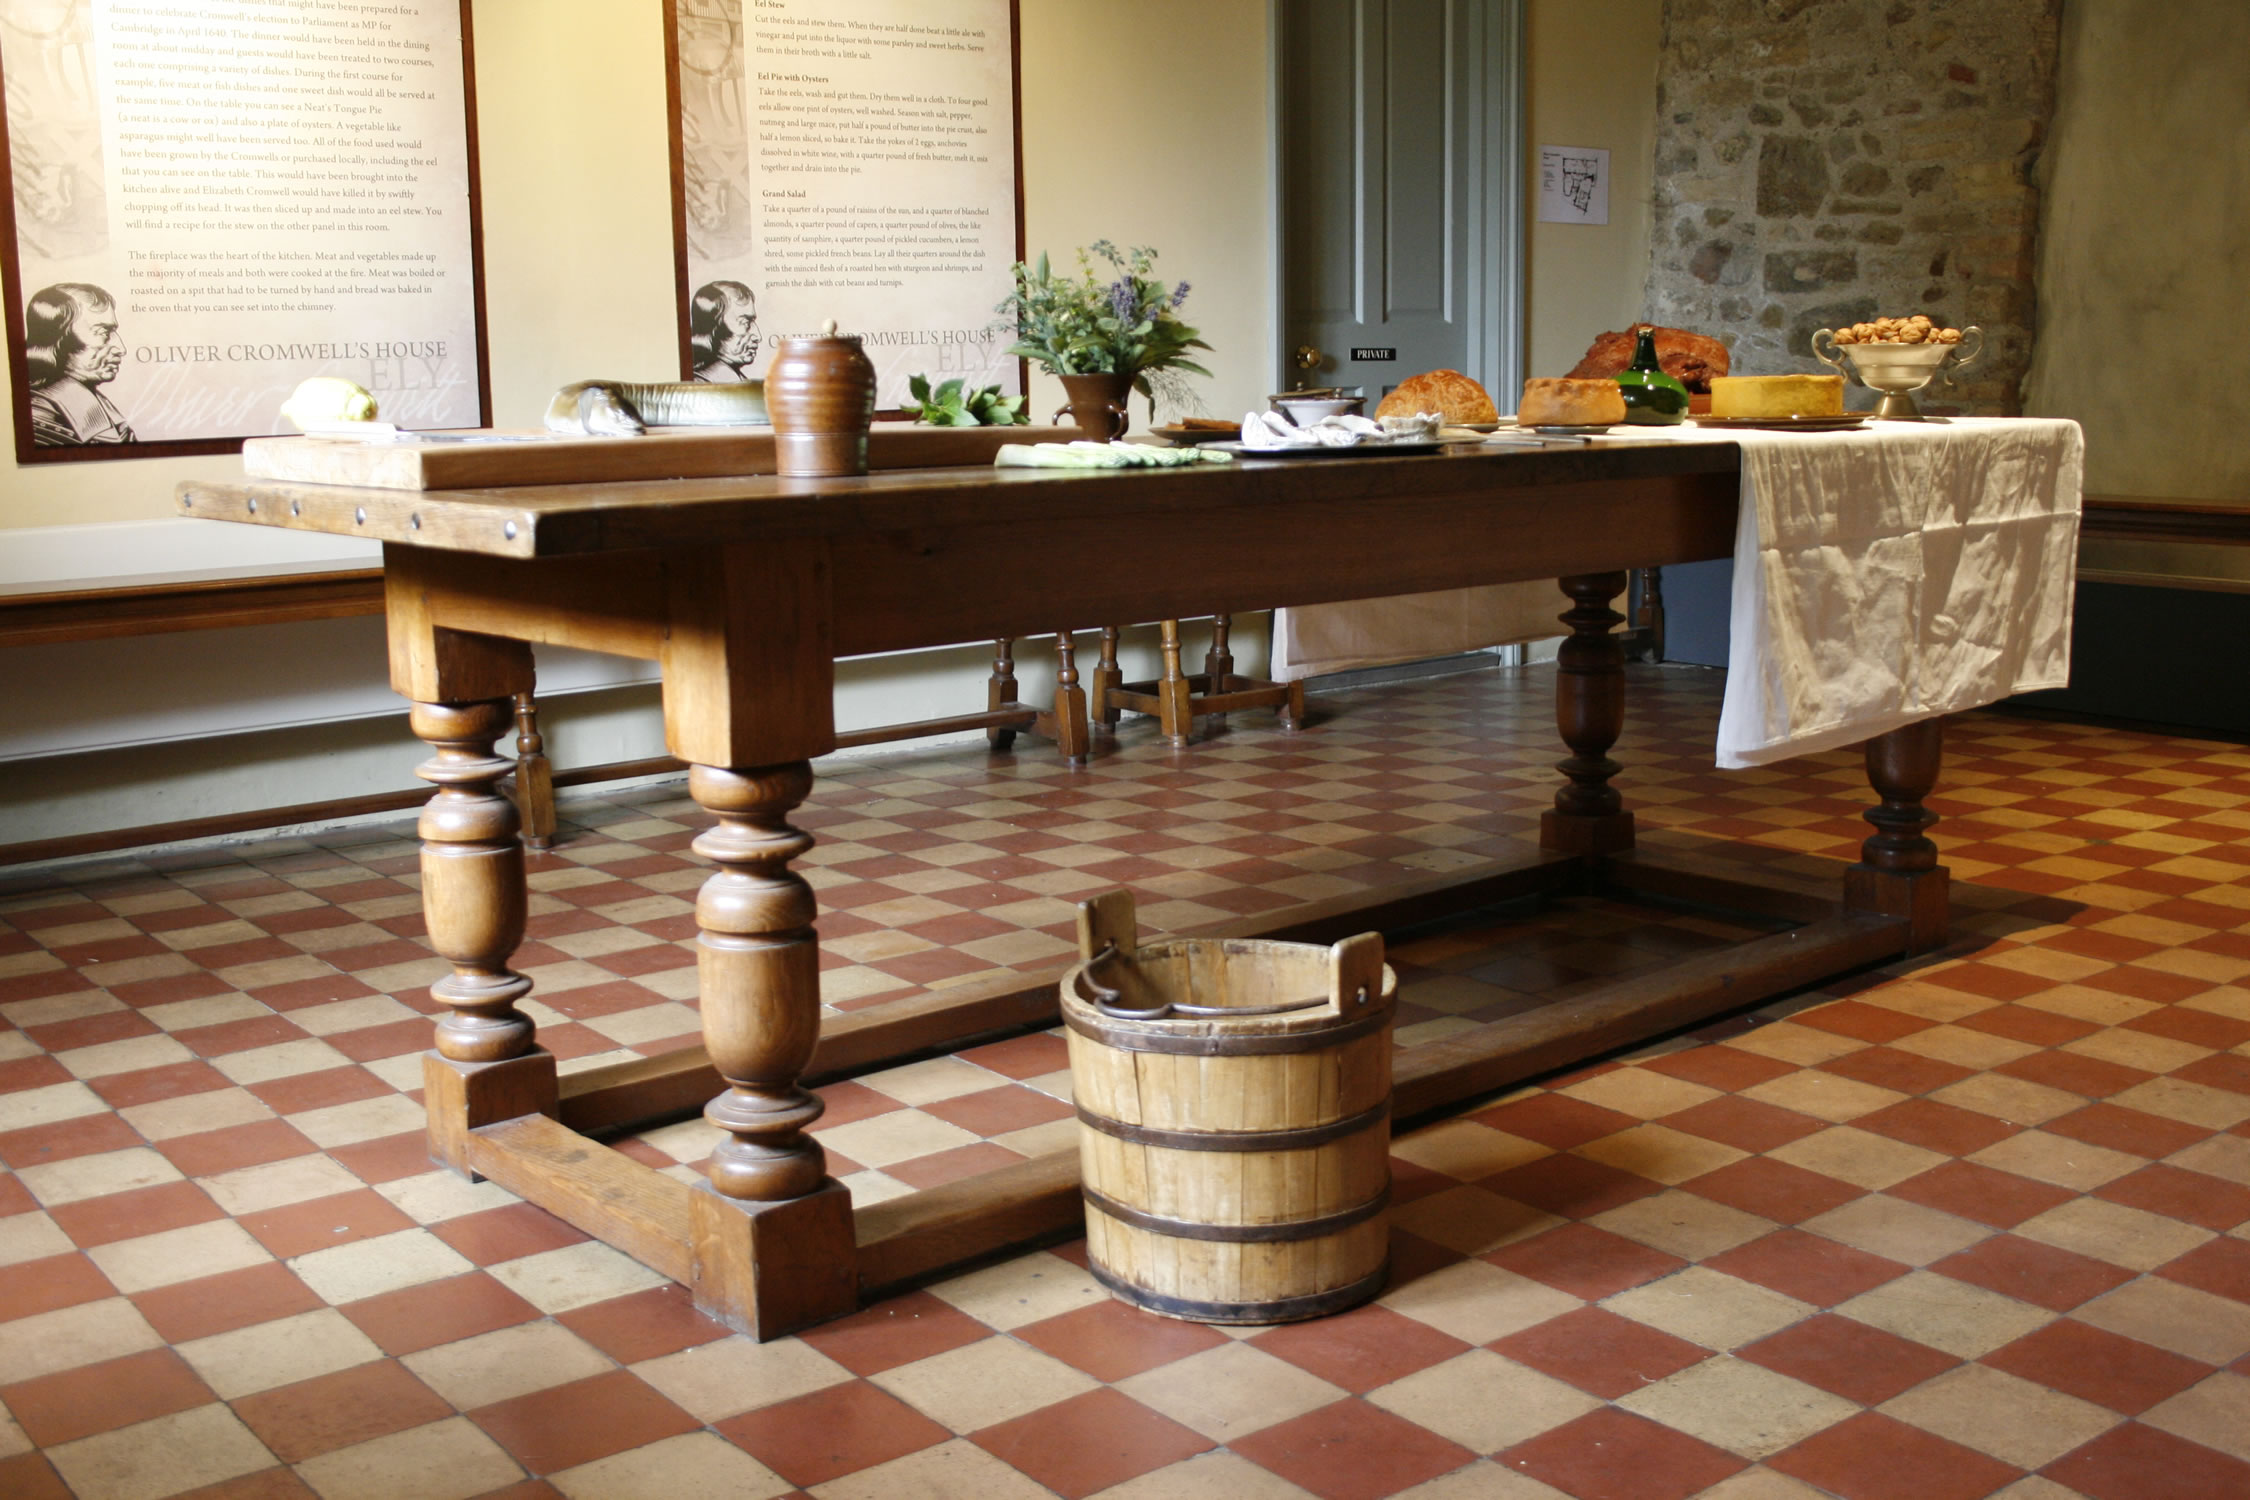 Oak refectory table for Oliver Cromwell's House, Ely